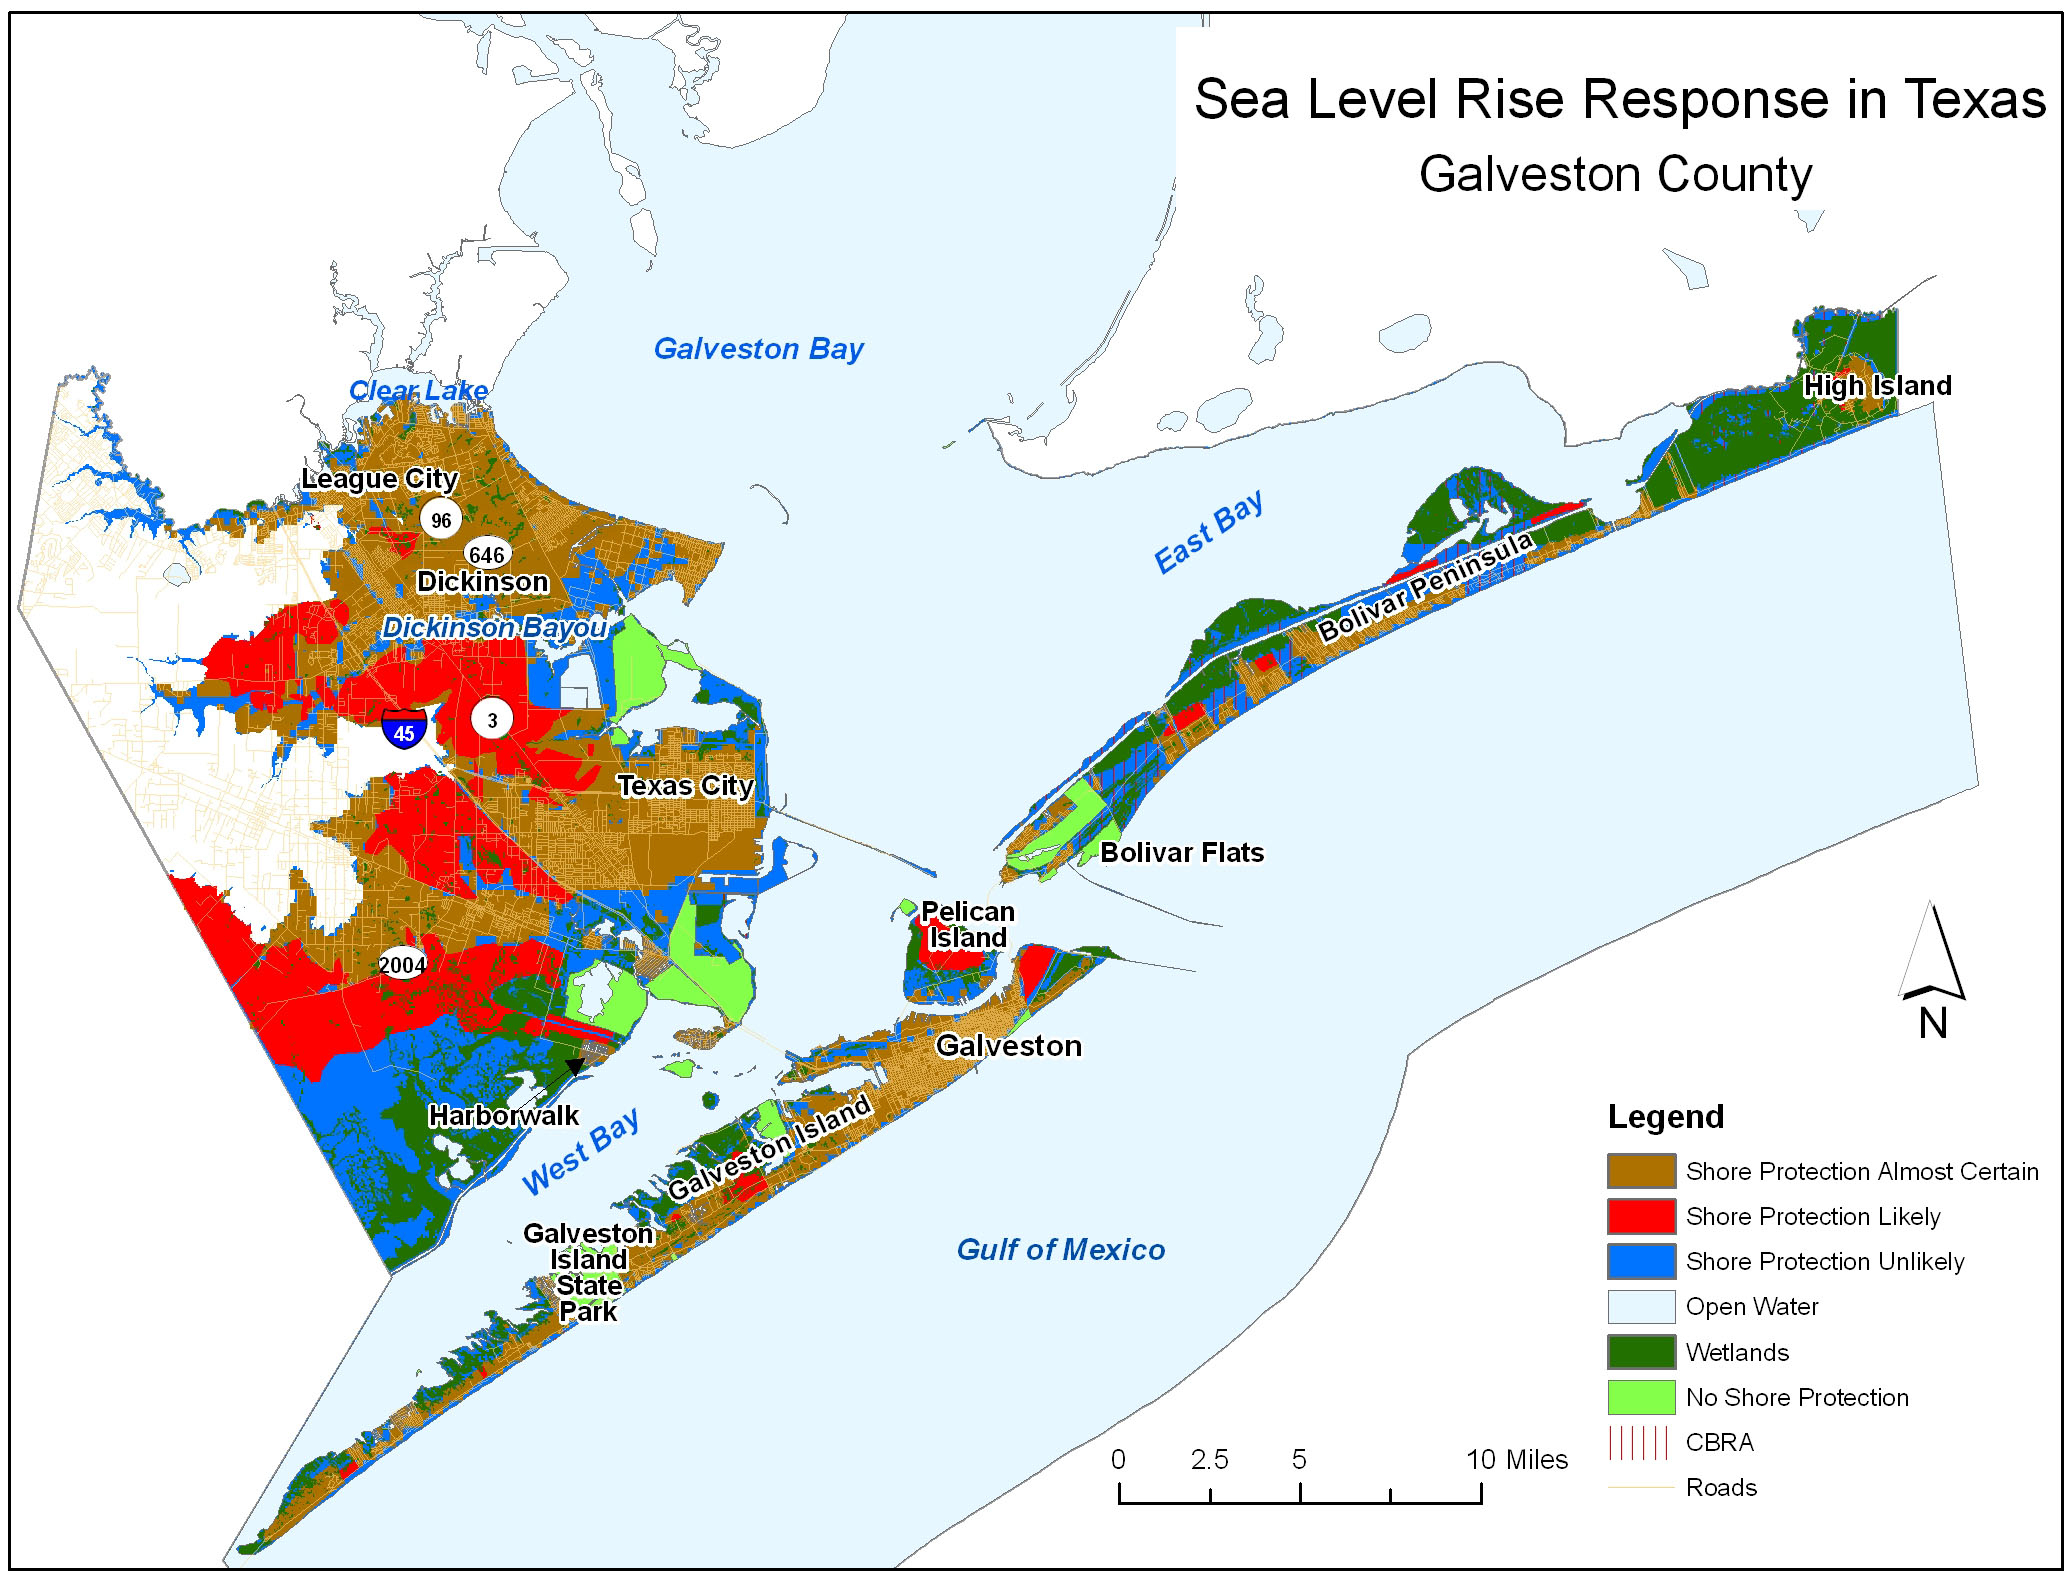 Sea Level Rise Planning Maps: Likelihood Of Shore Protection In Florida - Orange County Texas Flood Zone Map